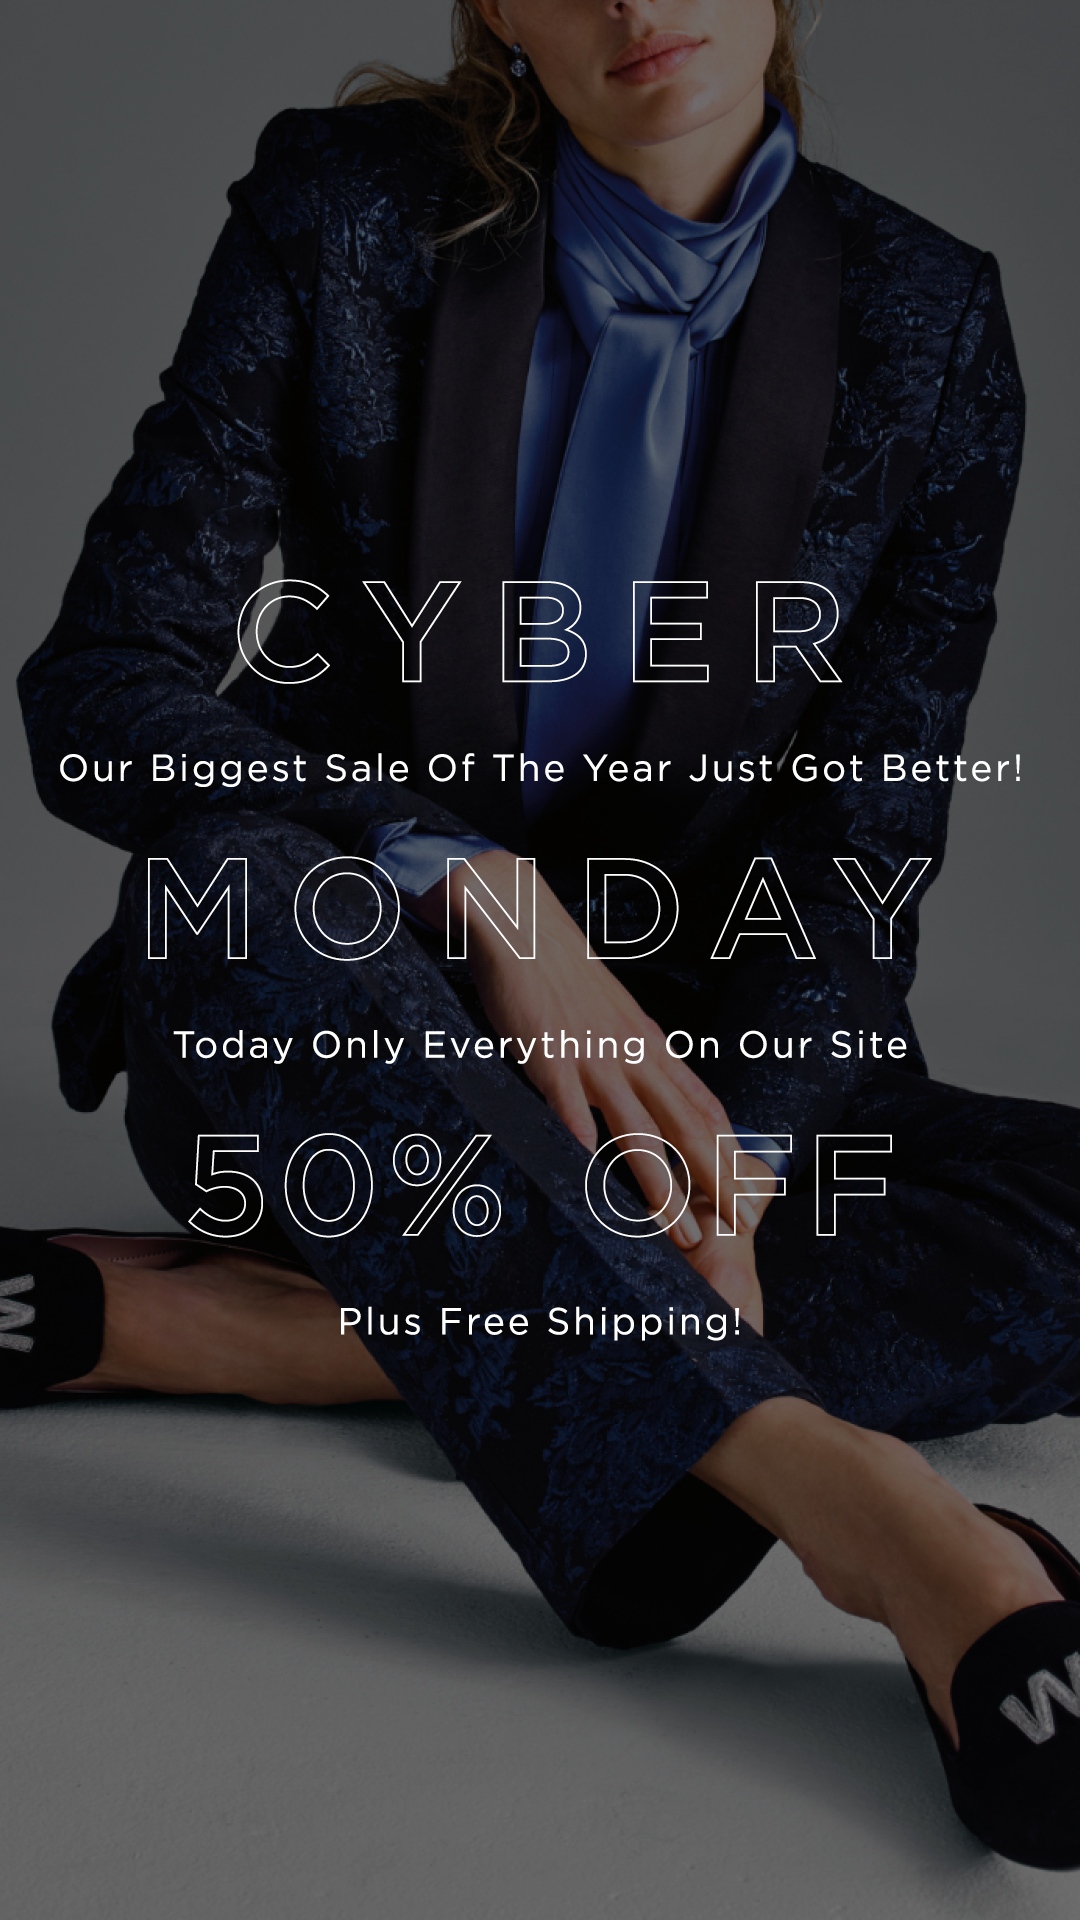 wbw_cyber monday_story